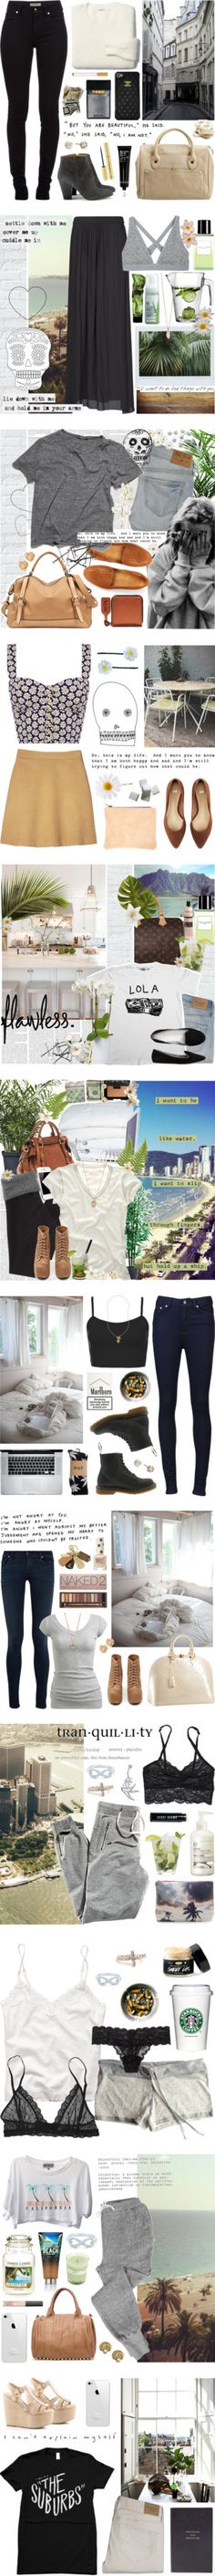 """SET ARCHIVE: Neutrals"" by c0ffee-kid ❤ liked on Polyvore"